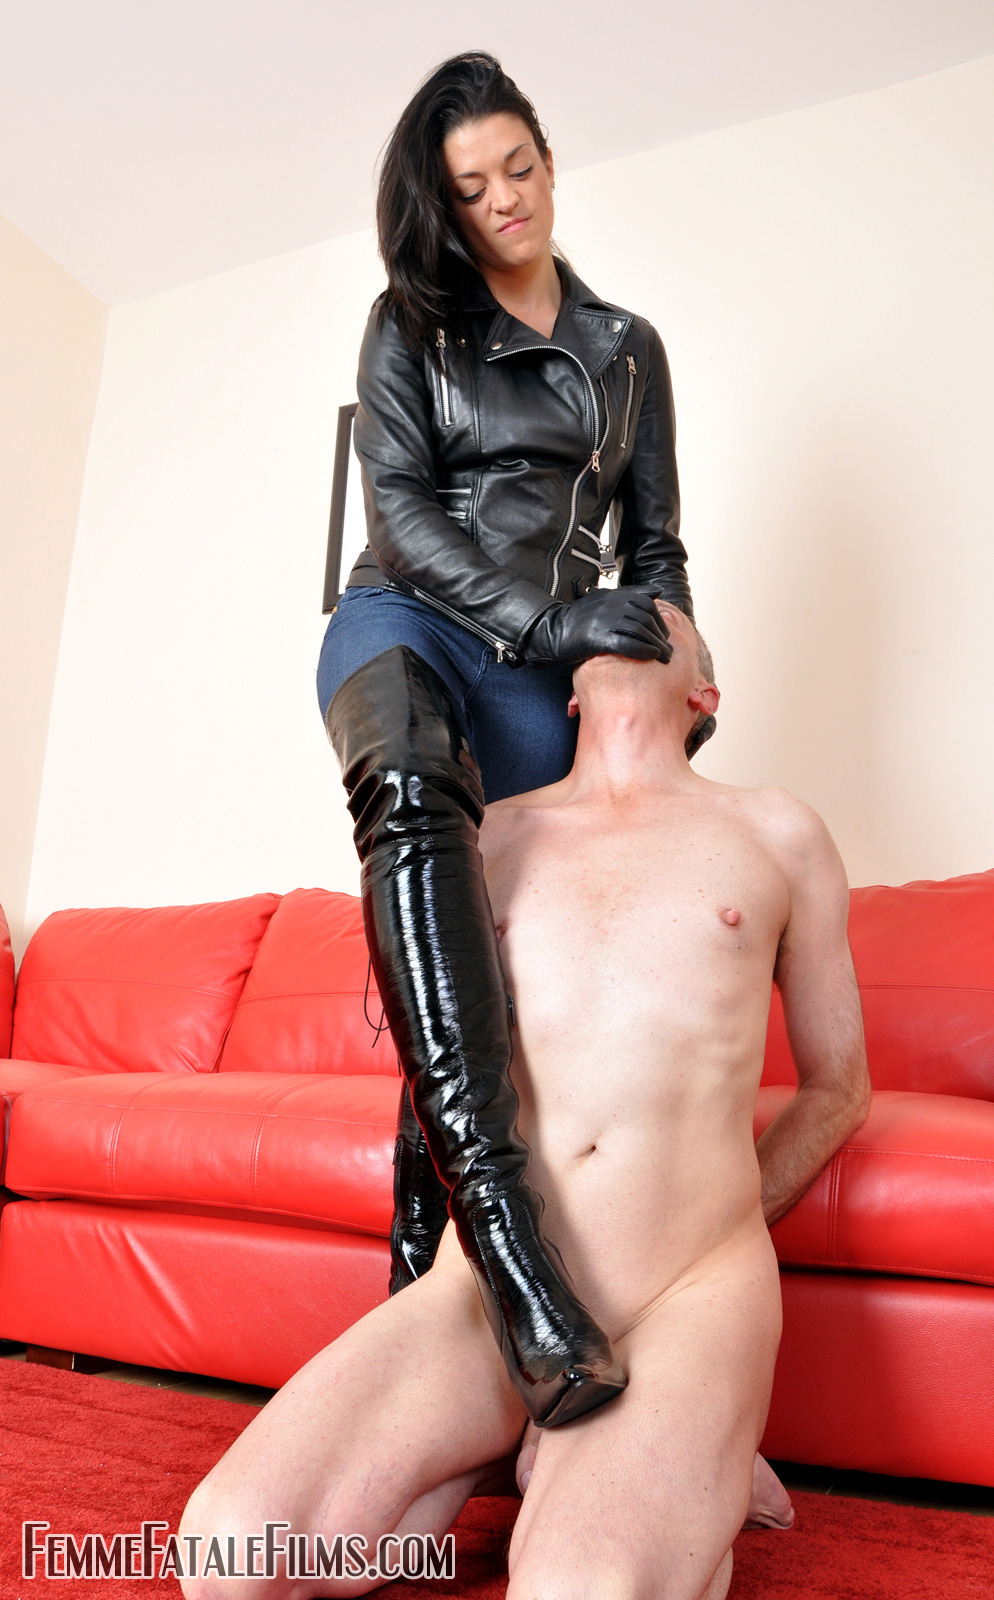 Right! Fetish leather boots